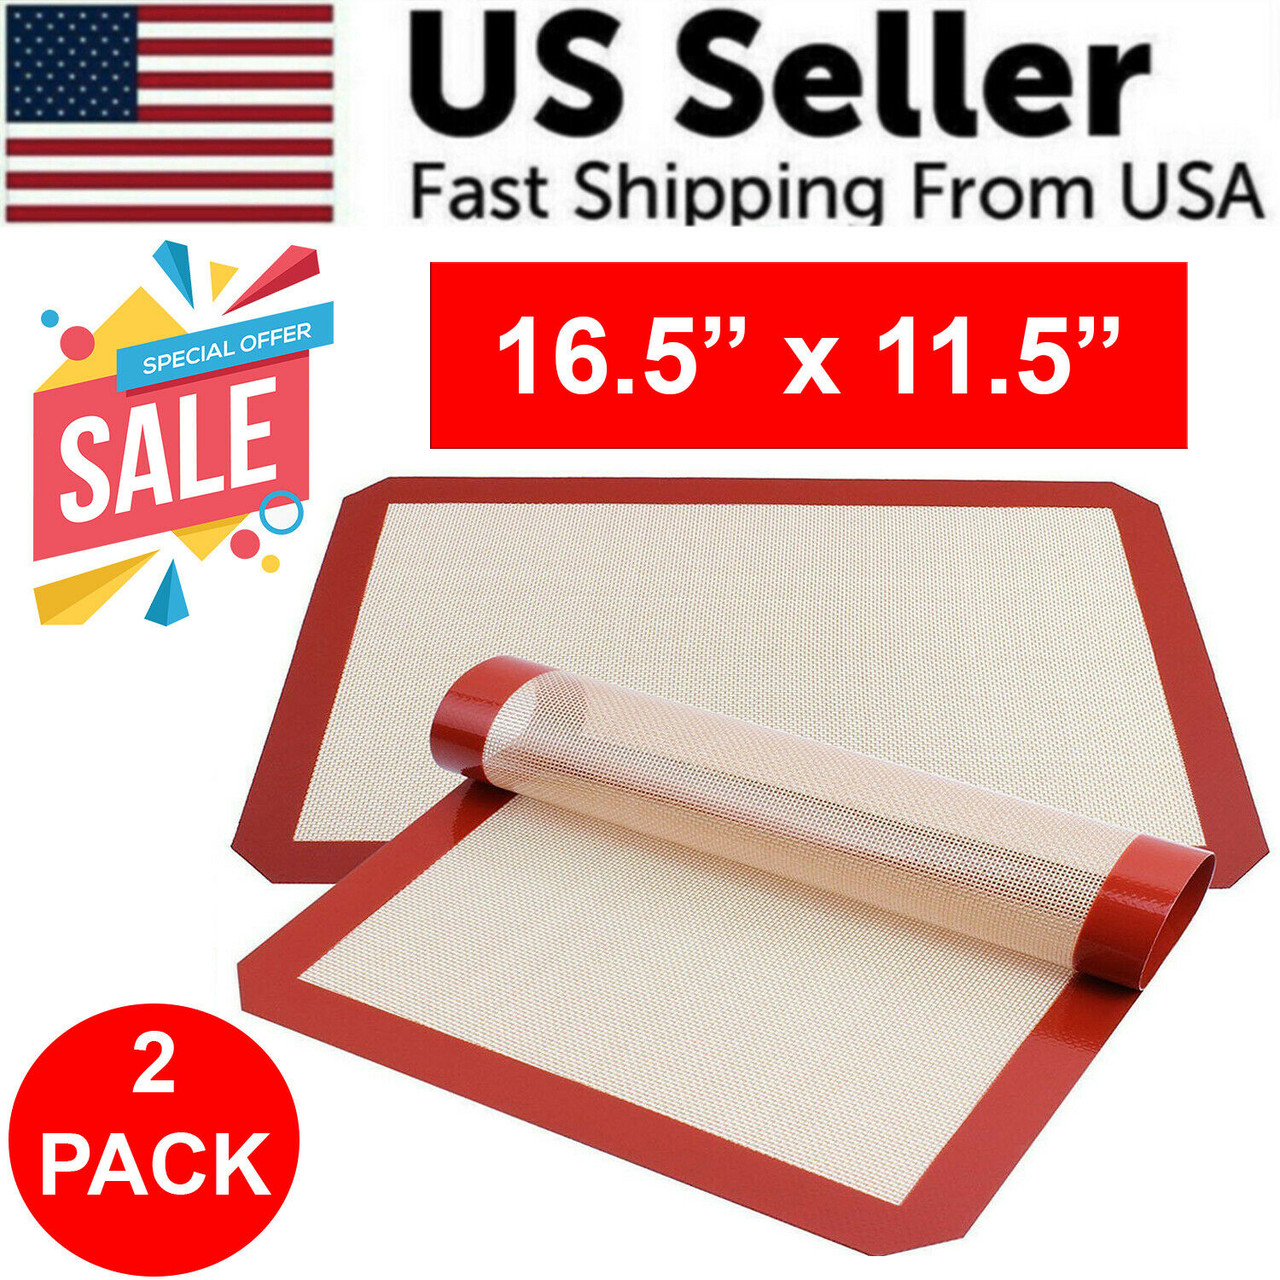 2 Pack Silicone Baking Mat Bakeware Oven Non Stick Cookie Tray Heat Resistant